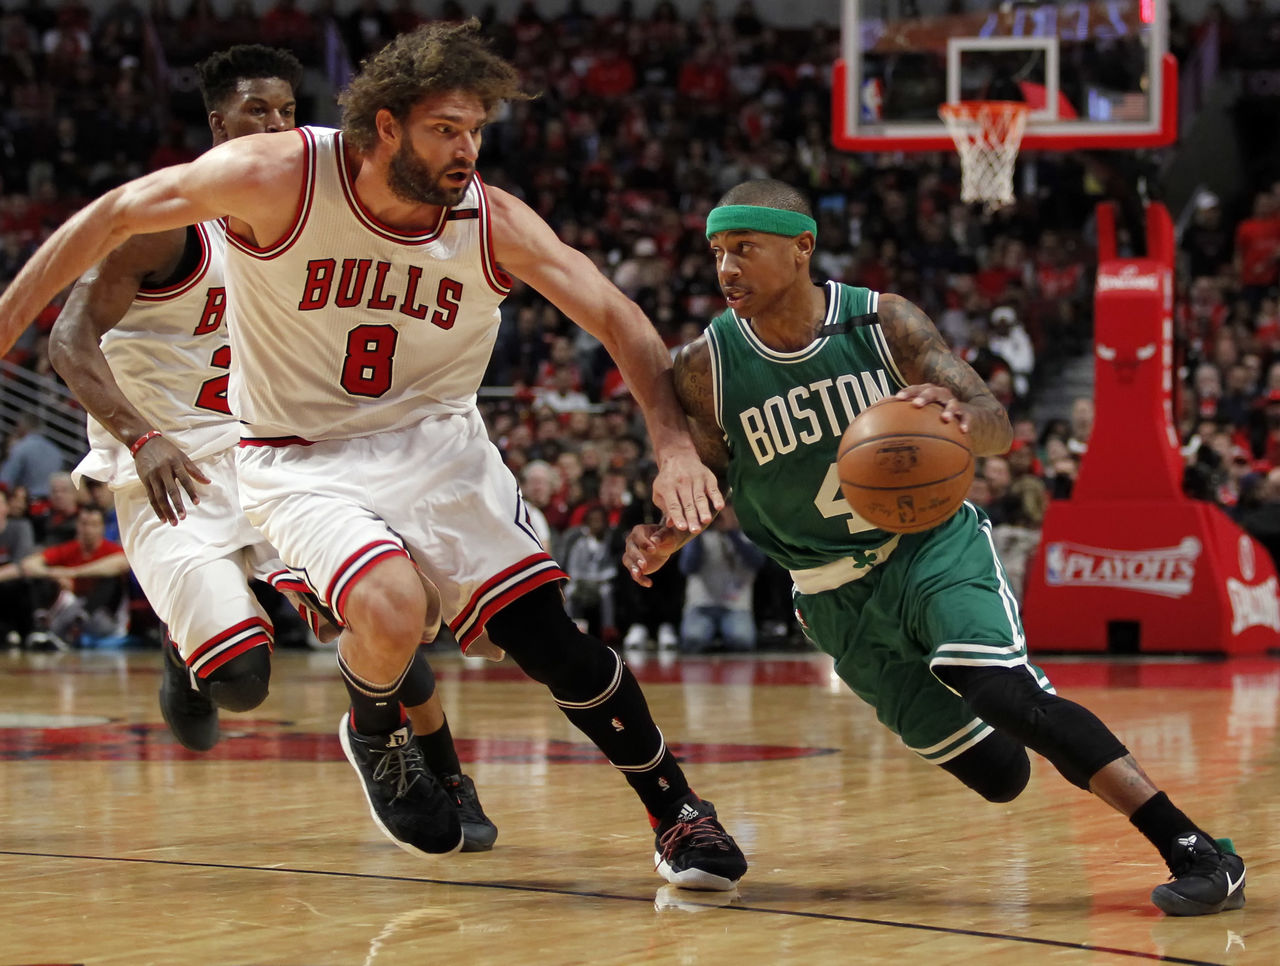 Cropped 2017 04 22t015754z 501528312 nocid rtrmadp 3 nba playoffs boston celtics at chicago bulls